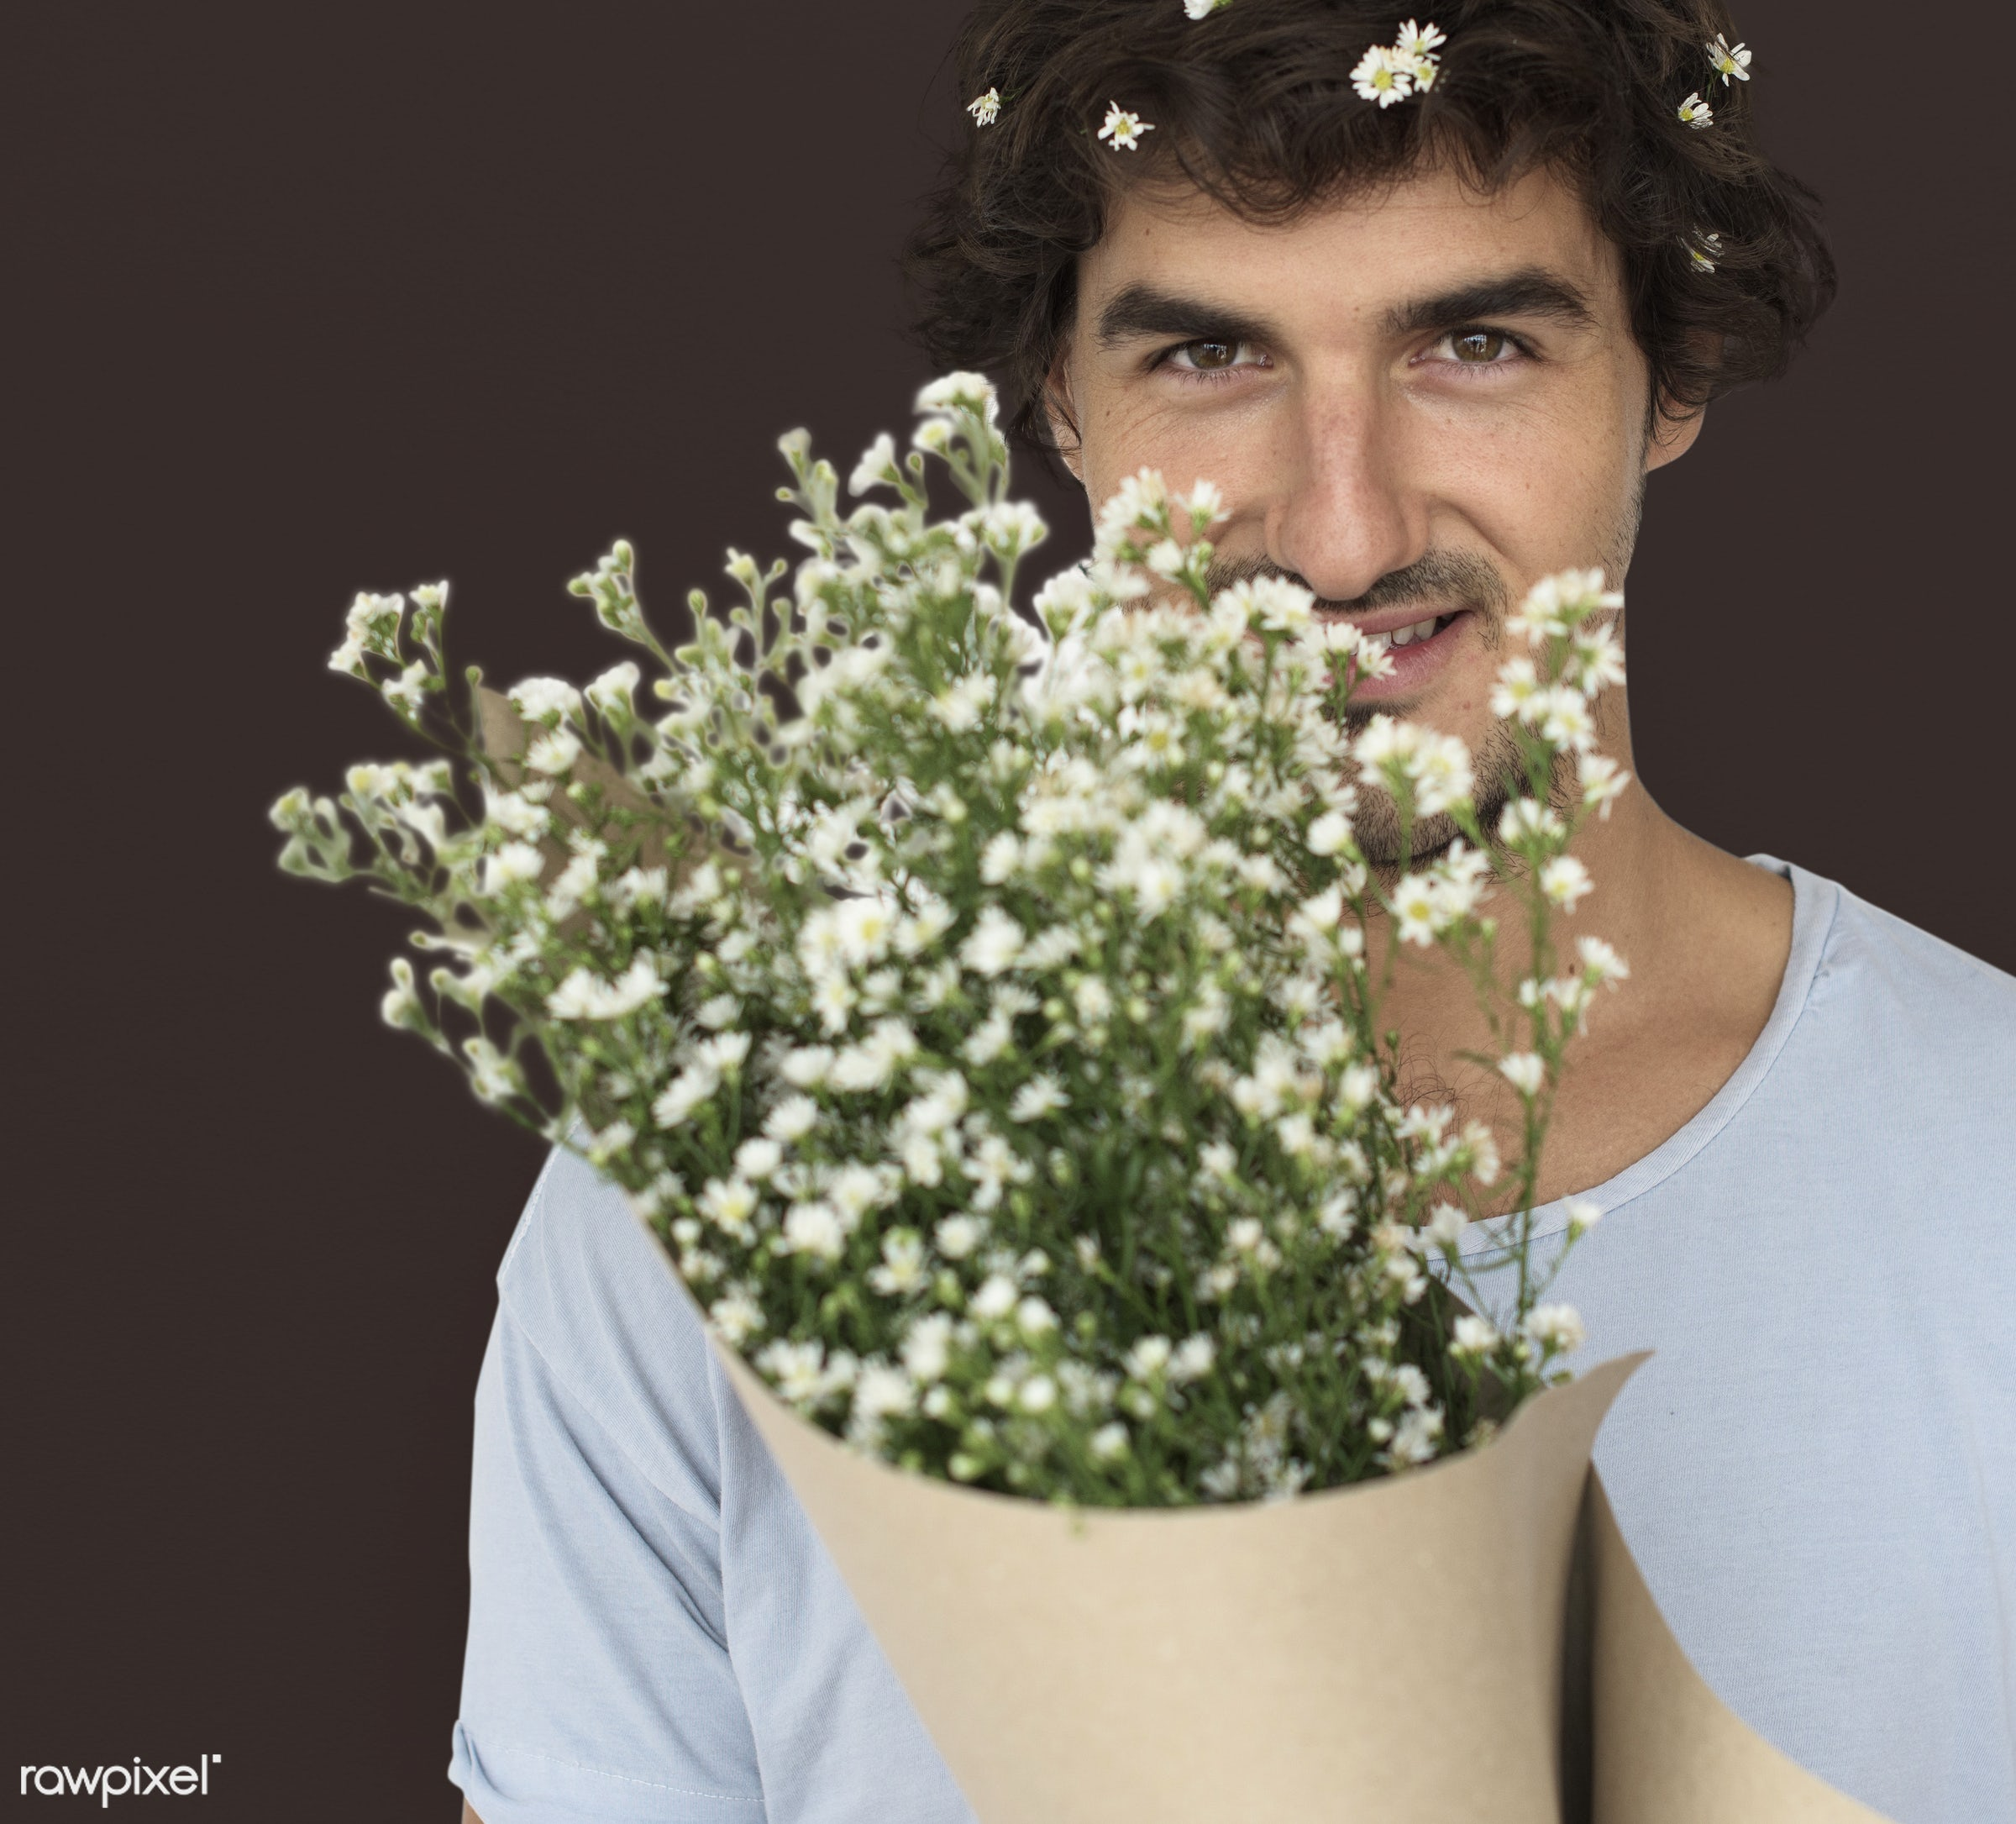 studio, expression, bouquet, person, people, smile, cheerful, flower, smiling, isolated, happiness, portrait, emotion,...